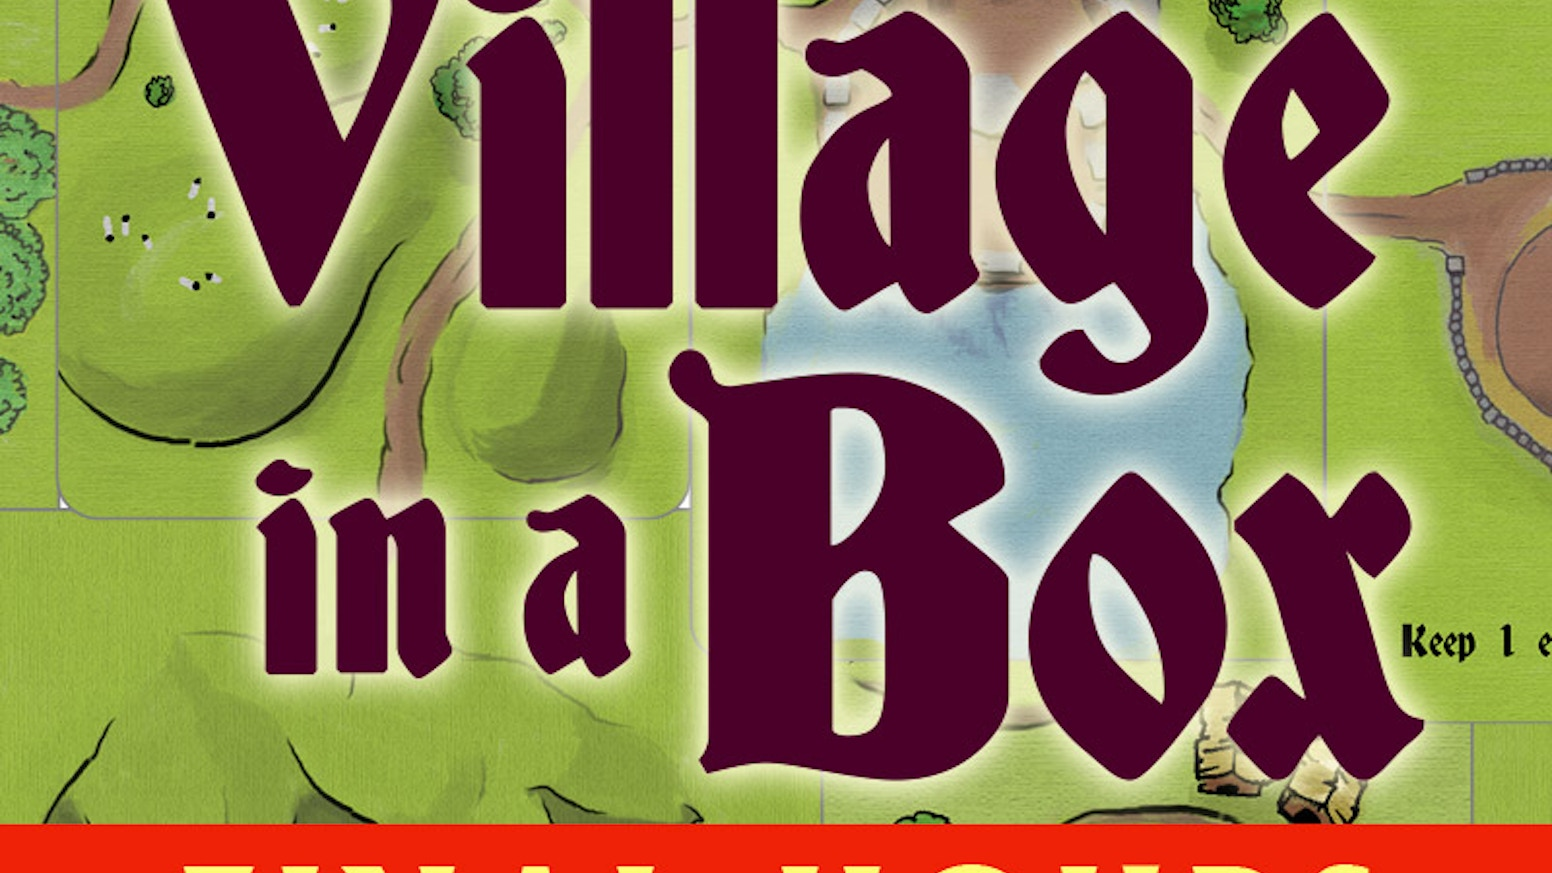 You're an impoverished medieval noble trying to build a decent home for your miserable subjects. Can you build a sweet village?